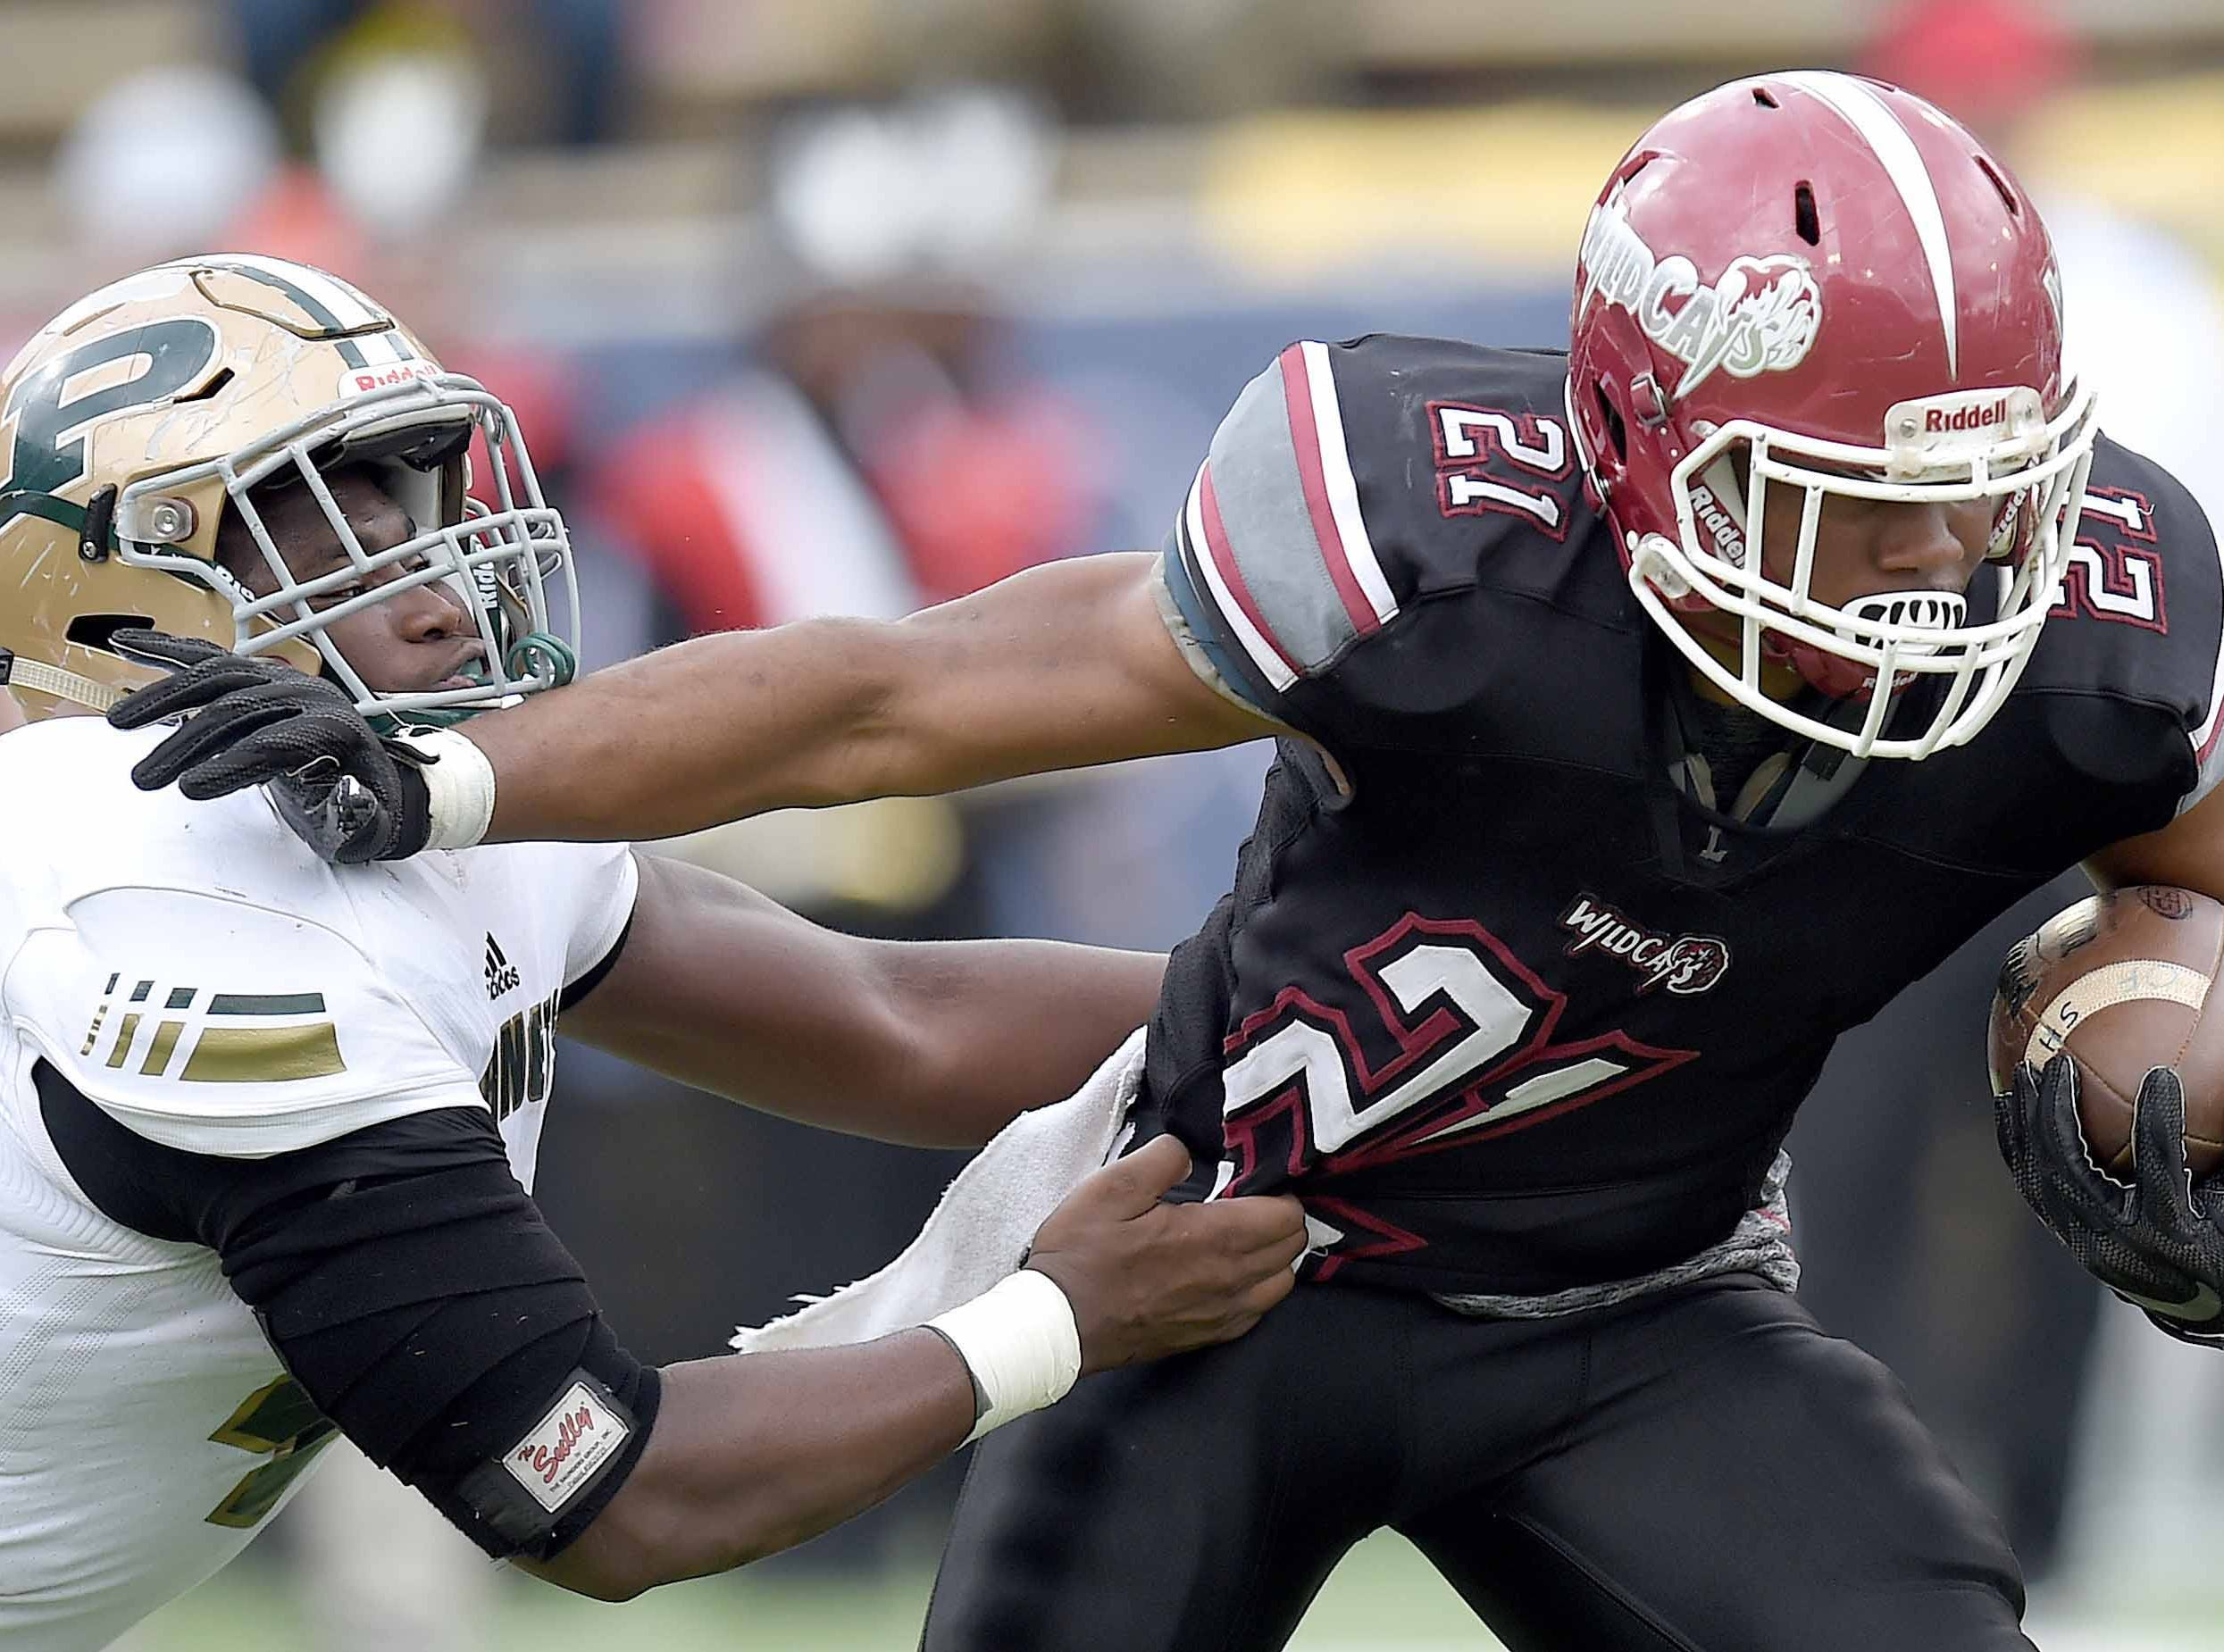 Louisville's Kevon Jackson (21) uses a stiff arm on a Poplarville defender on Saturday, December 1, 2018, in the MHSAA BlueCross BlueShield Gridiron Classic High School Football Championships in M.M. Roberts Stadium on the University of Southern Mississippi campus in Hattiesburg, Miss.